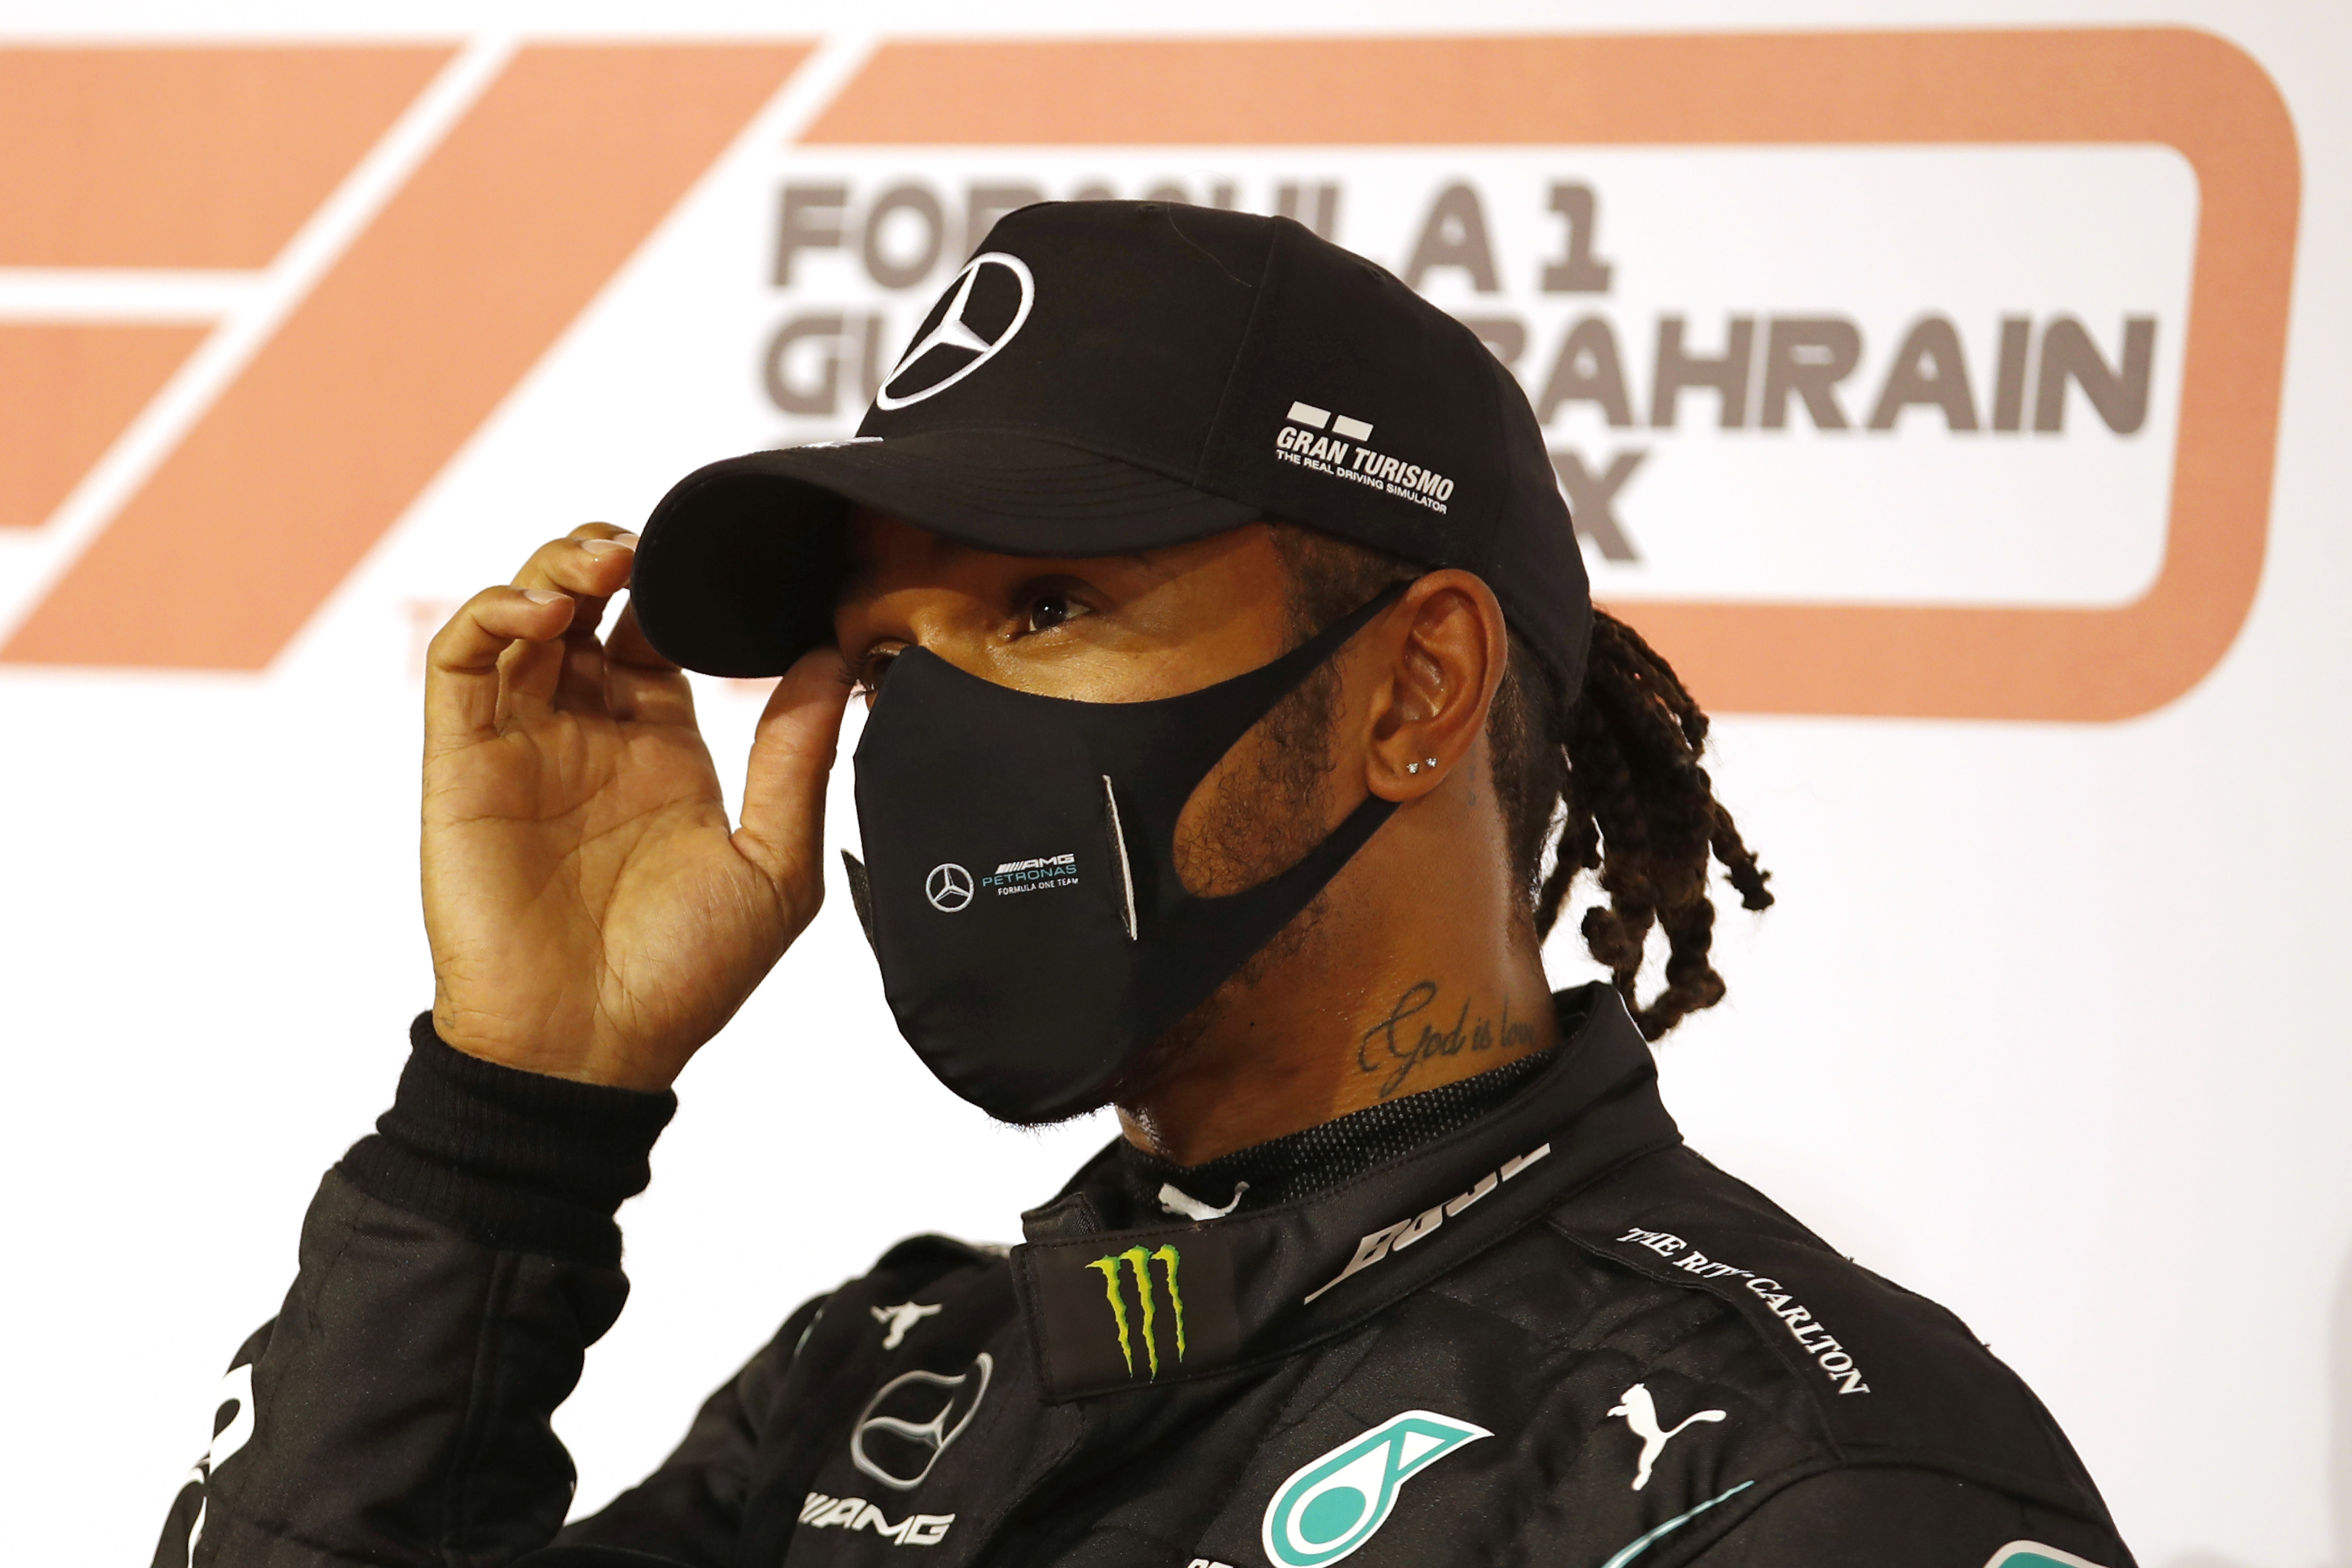 In this Saturday, Nov. 28, 2020 file photo Mercedes driver Lewis Hamilton of Britain gestures after taking the pole position after the qualifying session at the Formula One Bahrain International Circuit in Sakhir, Bahrain.